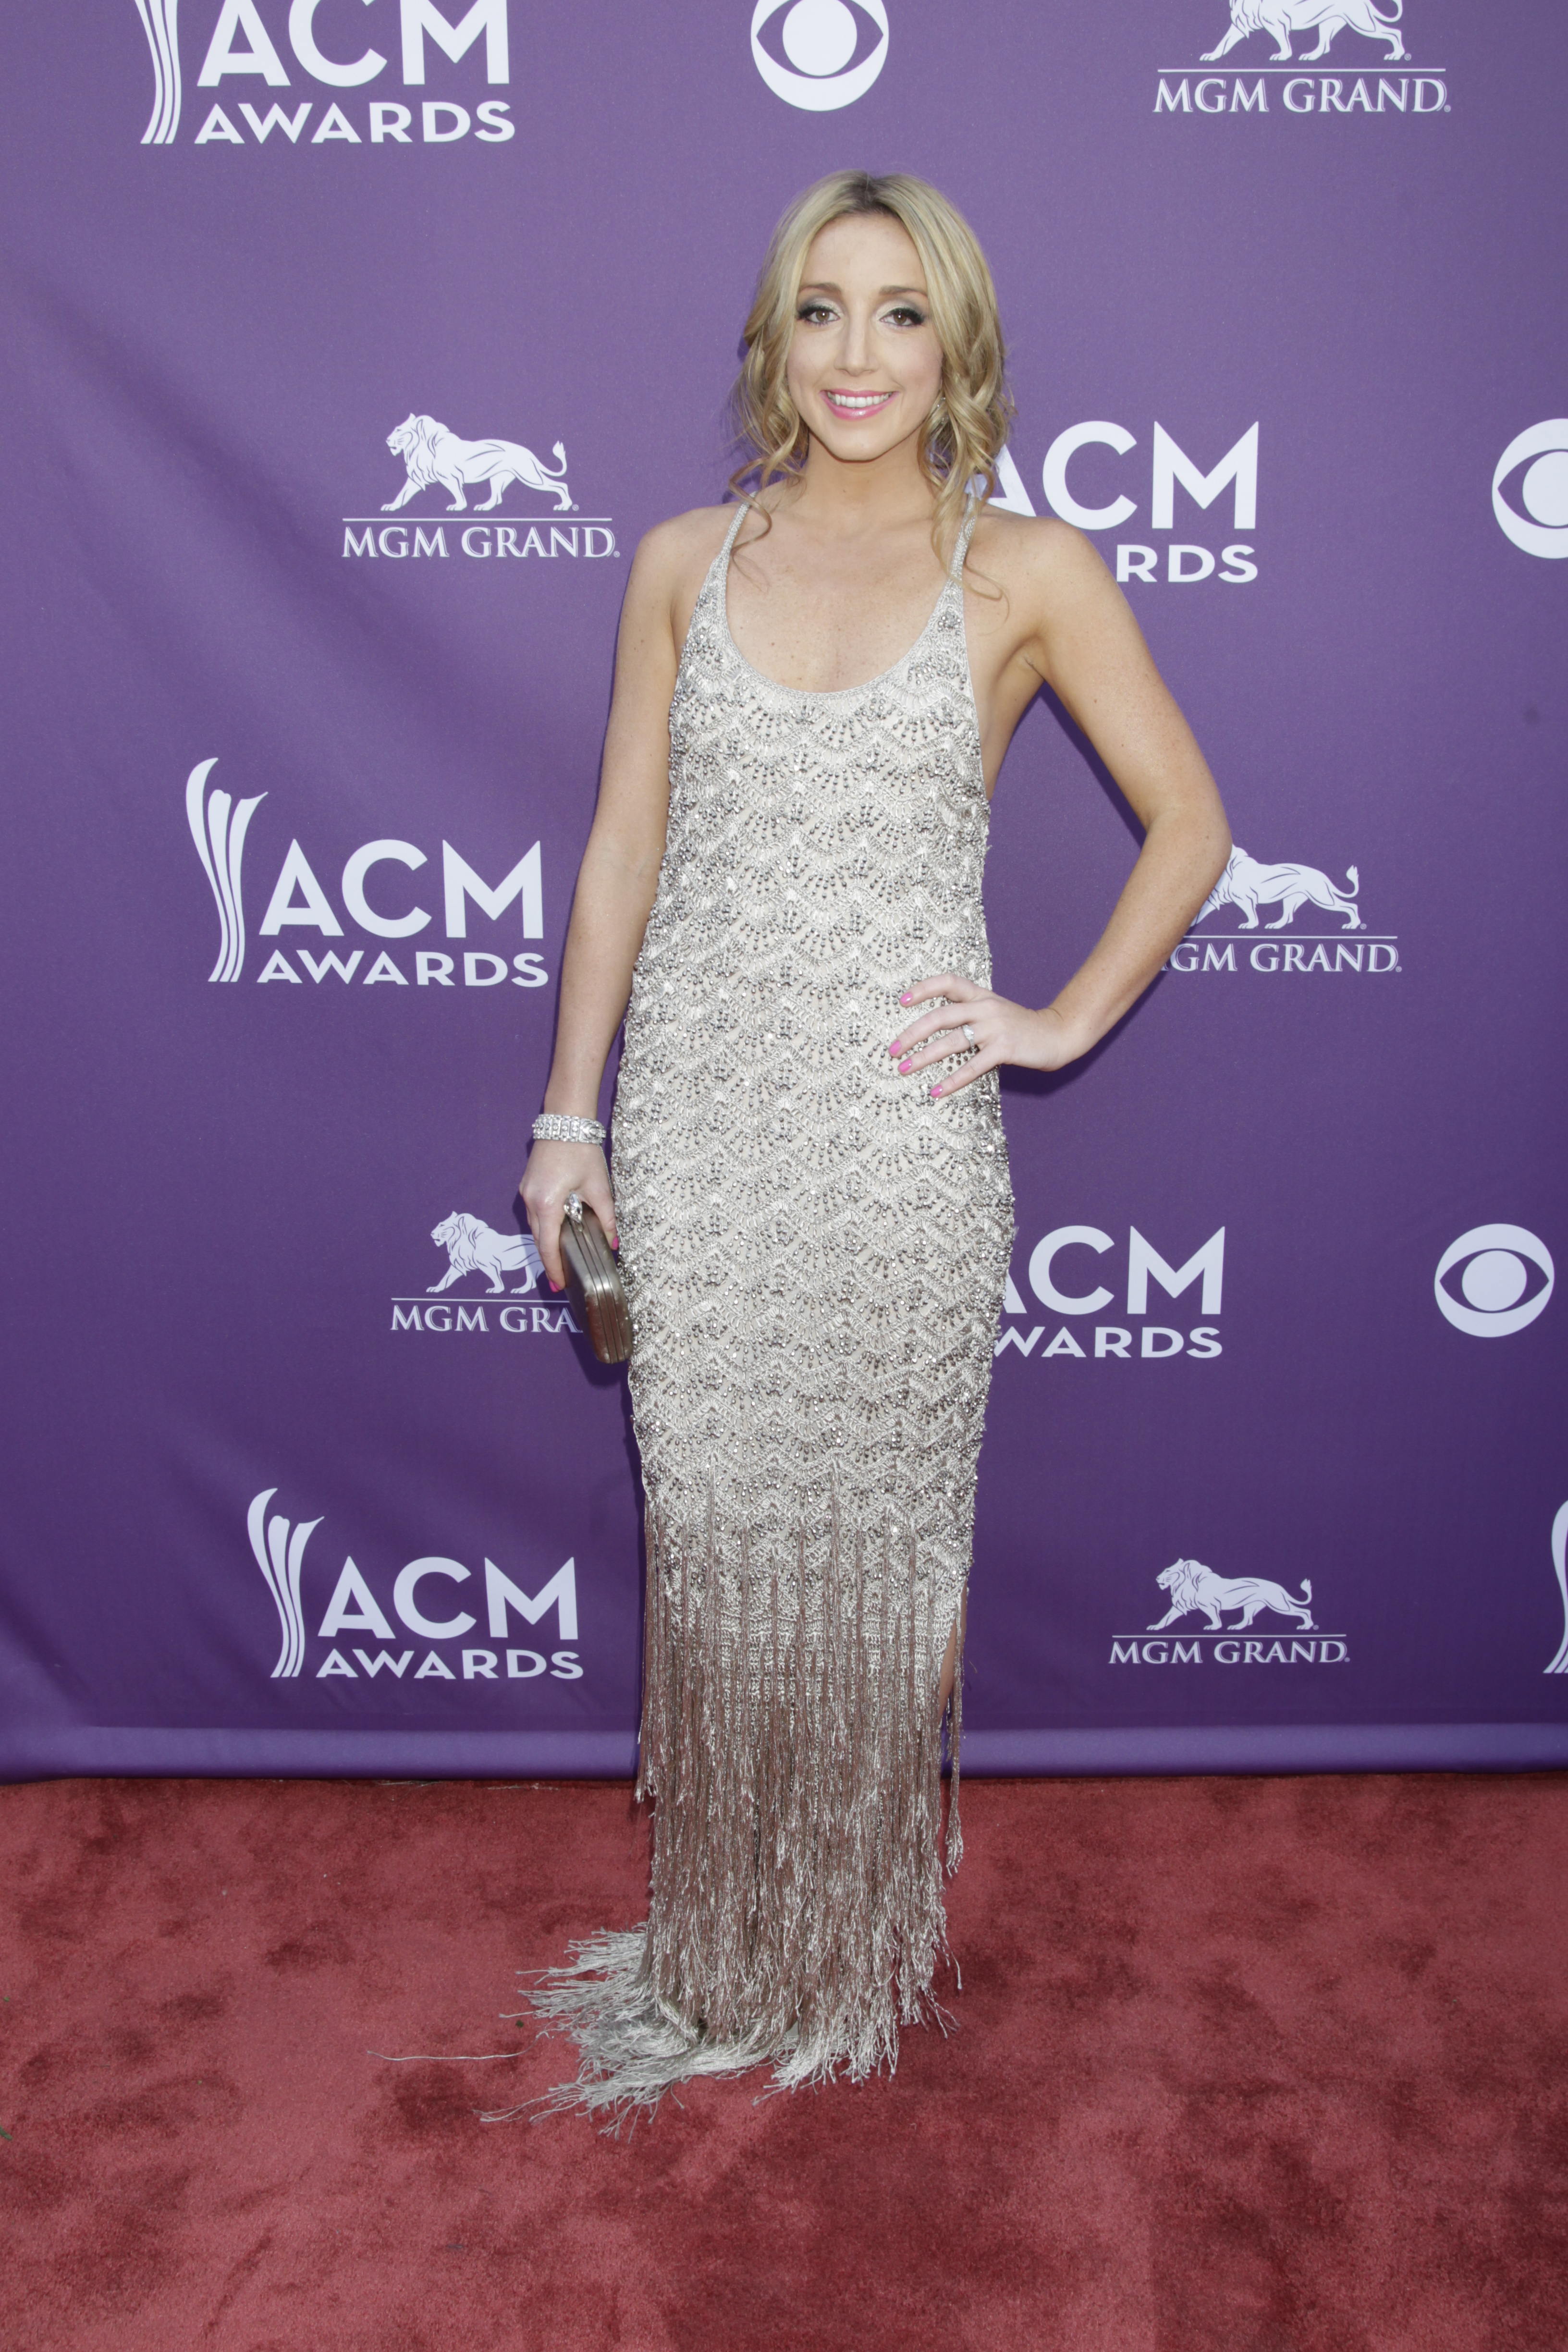 Ashley Monroe on the Red Carpet - 48th ACM Awards